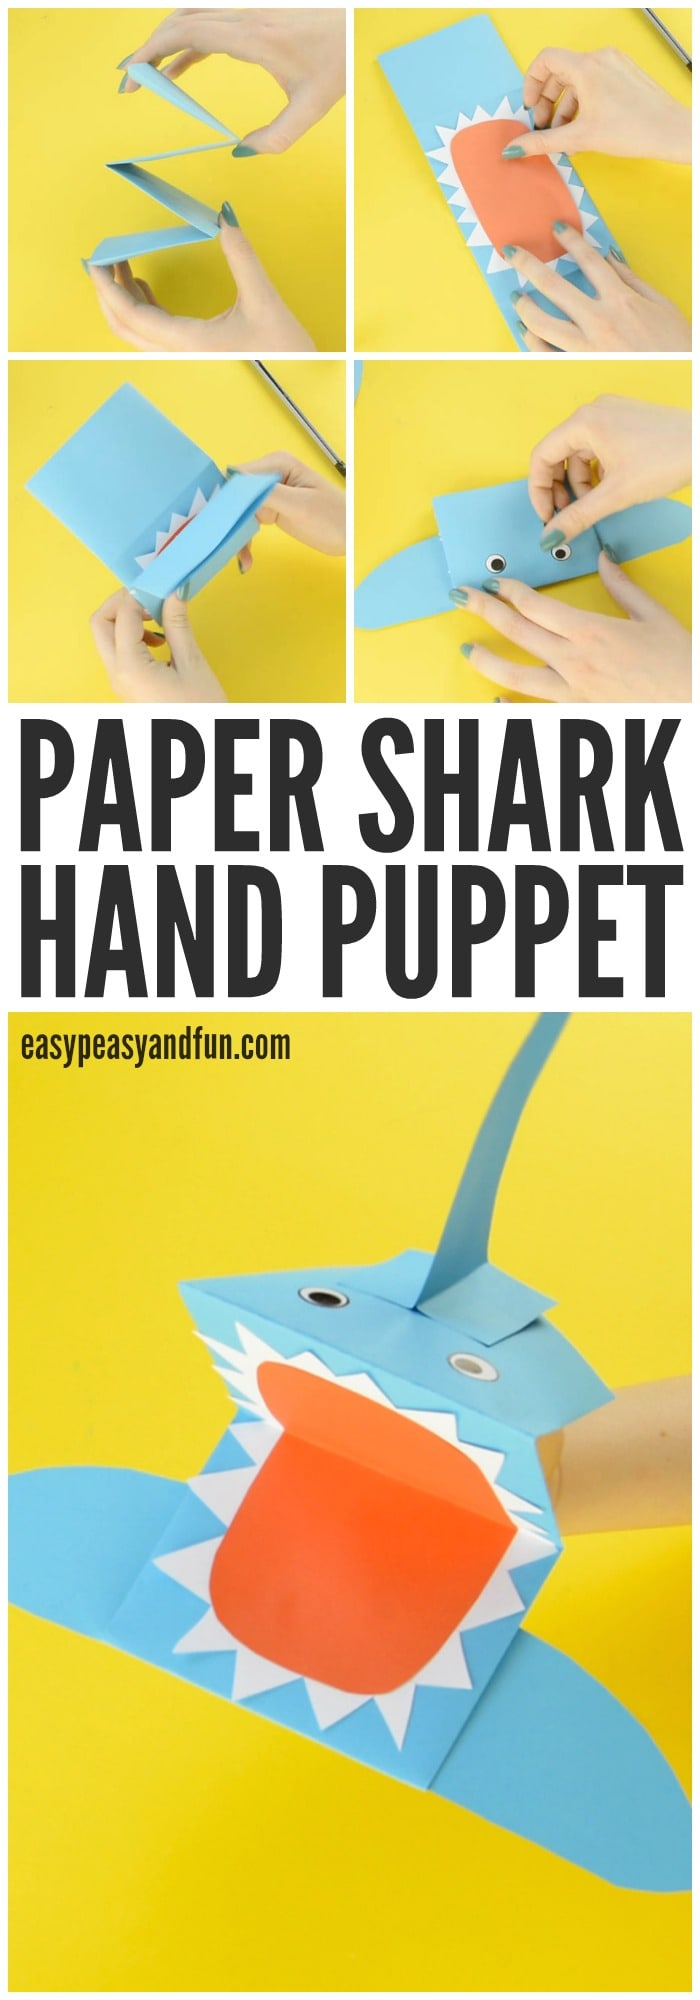 Shark Paper Hand Puppet Craft for Kids to Make